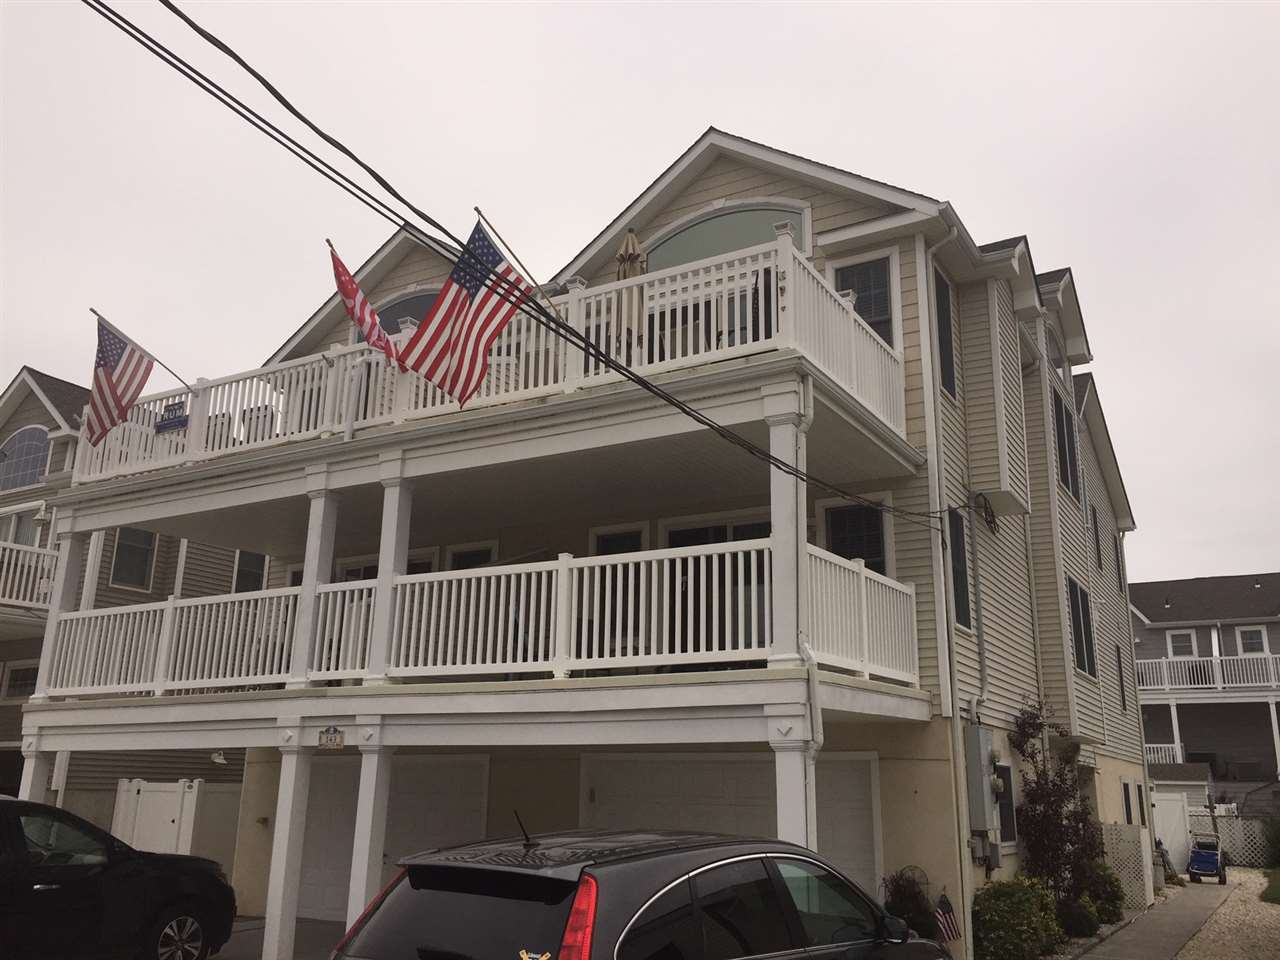 143 60TH STREET - Picture 1